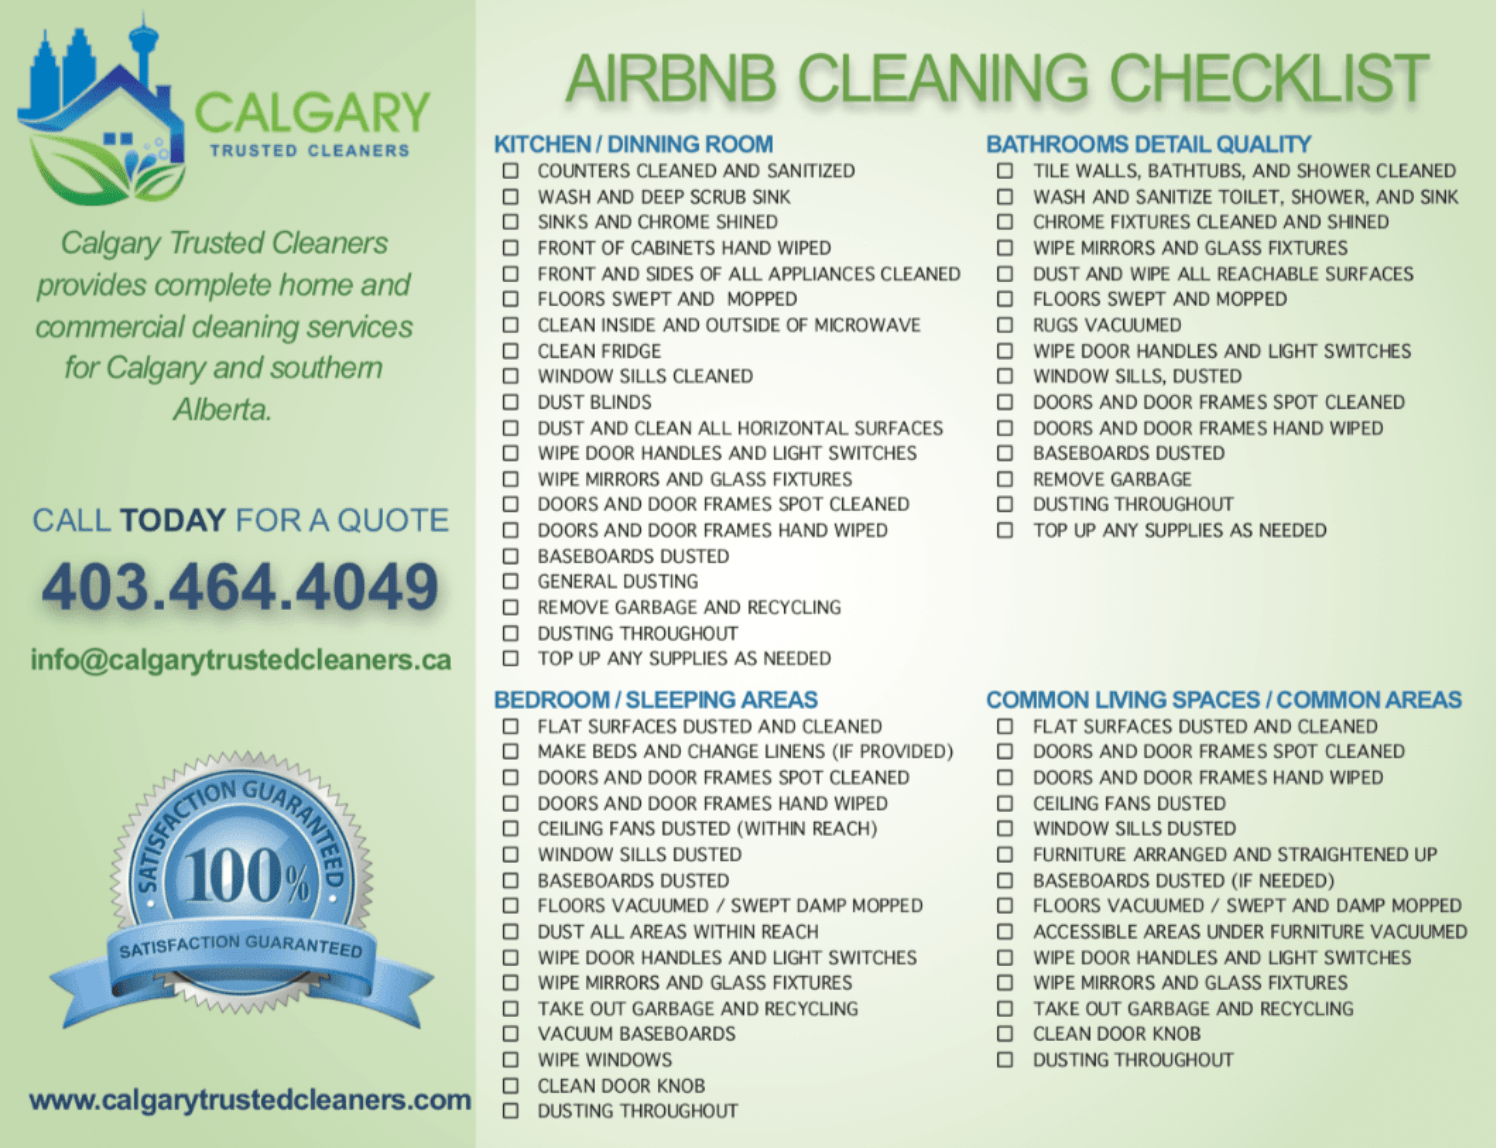 Hire Calgary Trusted Cleaners because we have experience